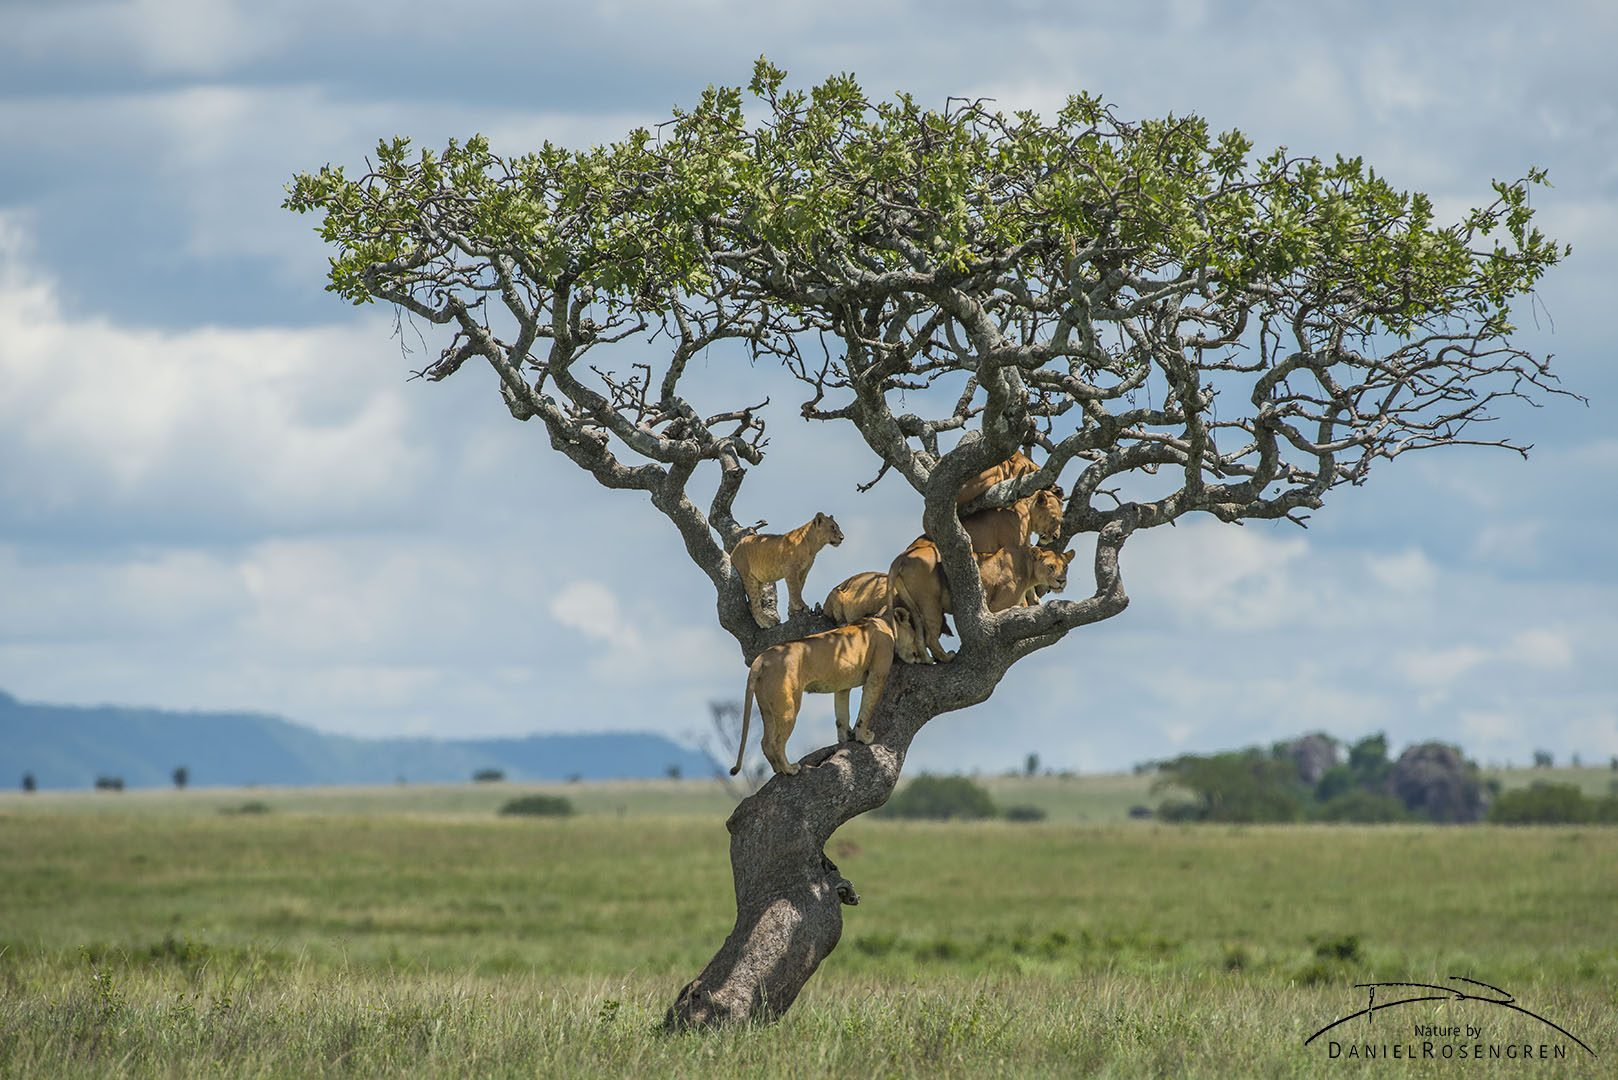 From a tree, the lions can keep an eye on their surroundings. © Daniel Rosengren